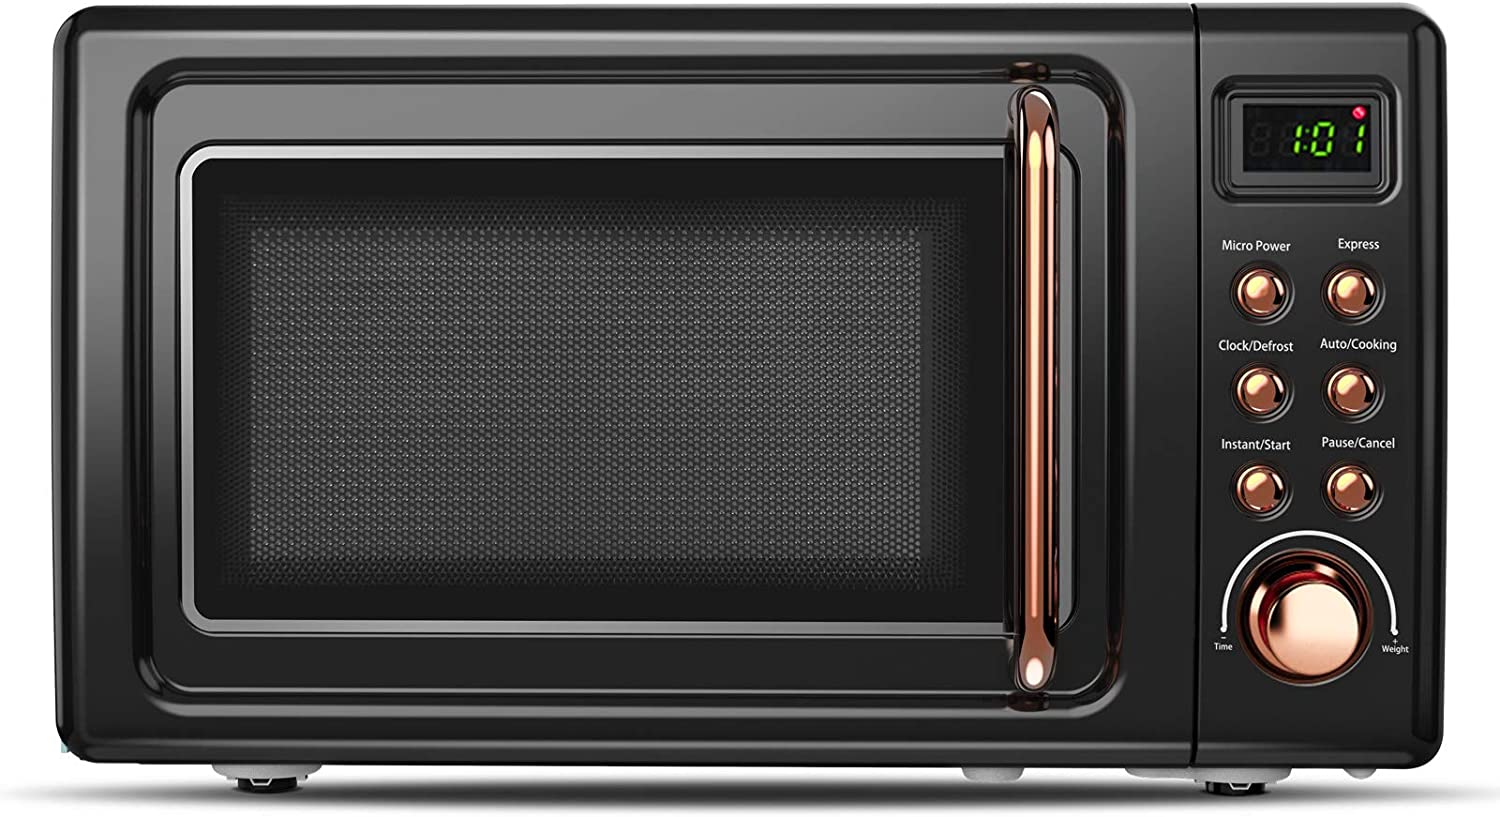 ARLIME Retro Countertop Microwave Oven, 0.7Cu.ft, 700-Watt with 5 Micro Power Defrost & Auto Cooking Function, LED Display, Glass Turntable & Viewing Window, Stainless Steel (Golden)